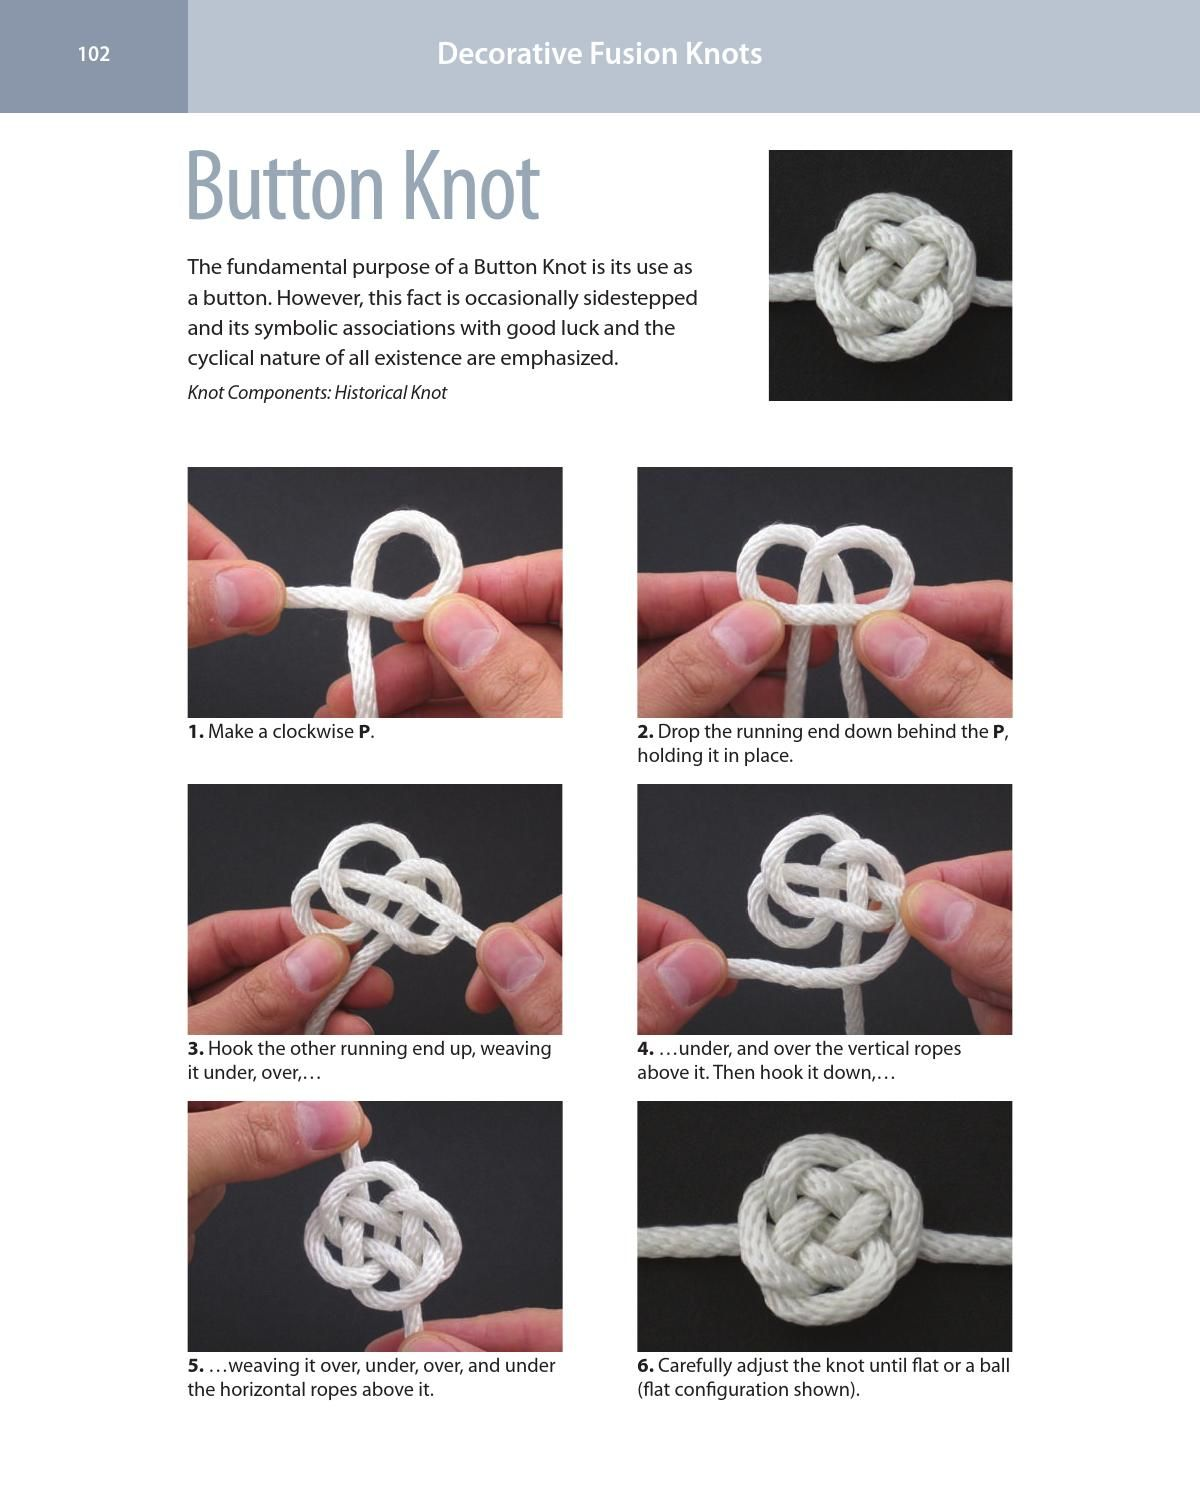 Decorative Fusion Knots J D Lenzen With Images Macrame Knots